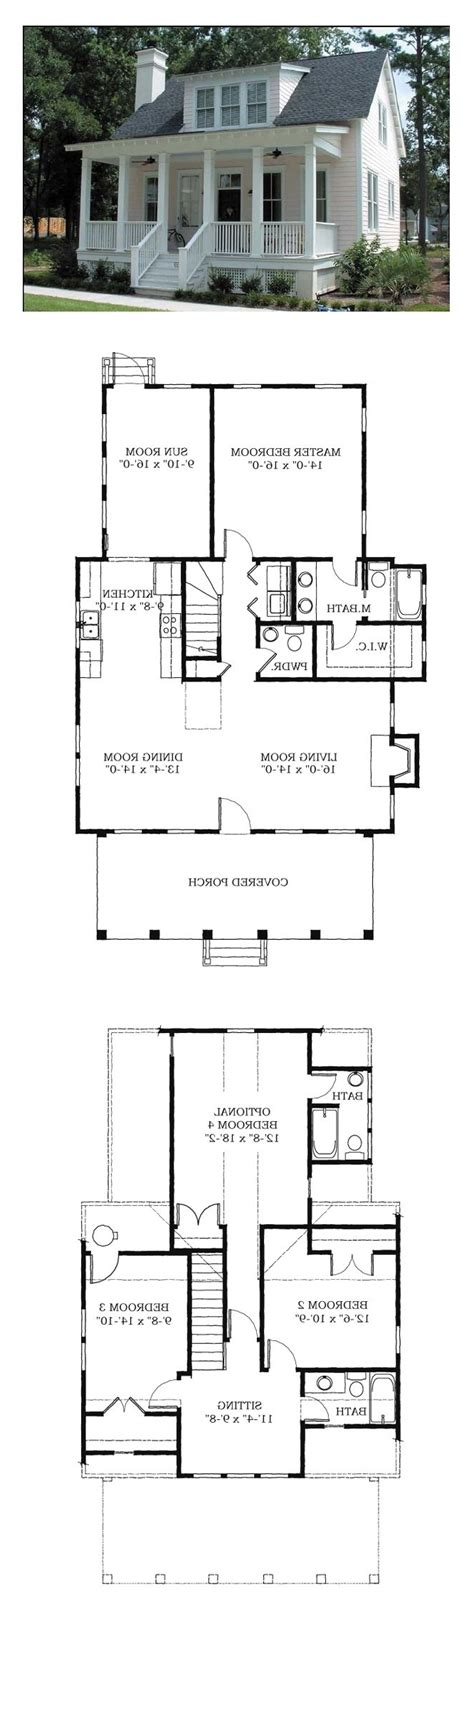 plans for a small house very small house plans